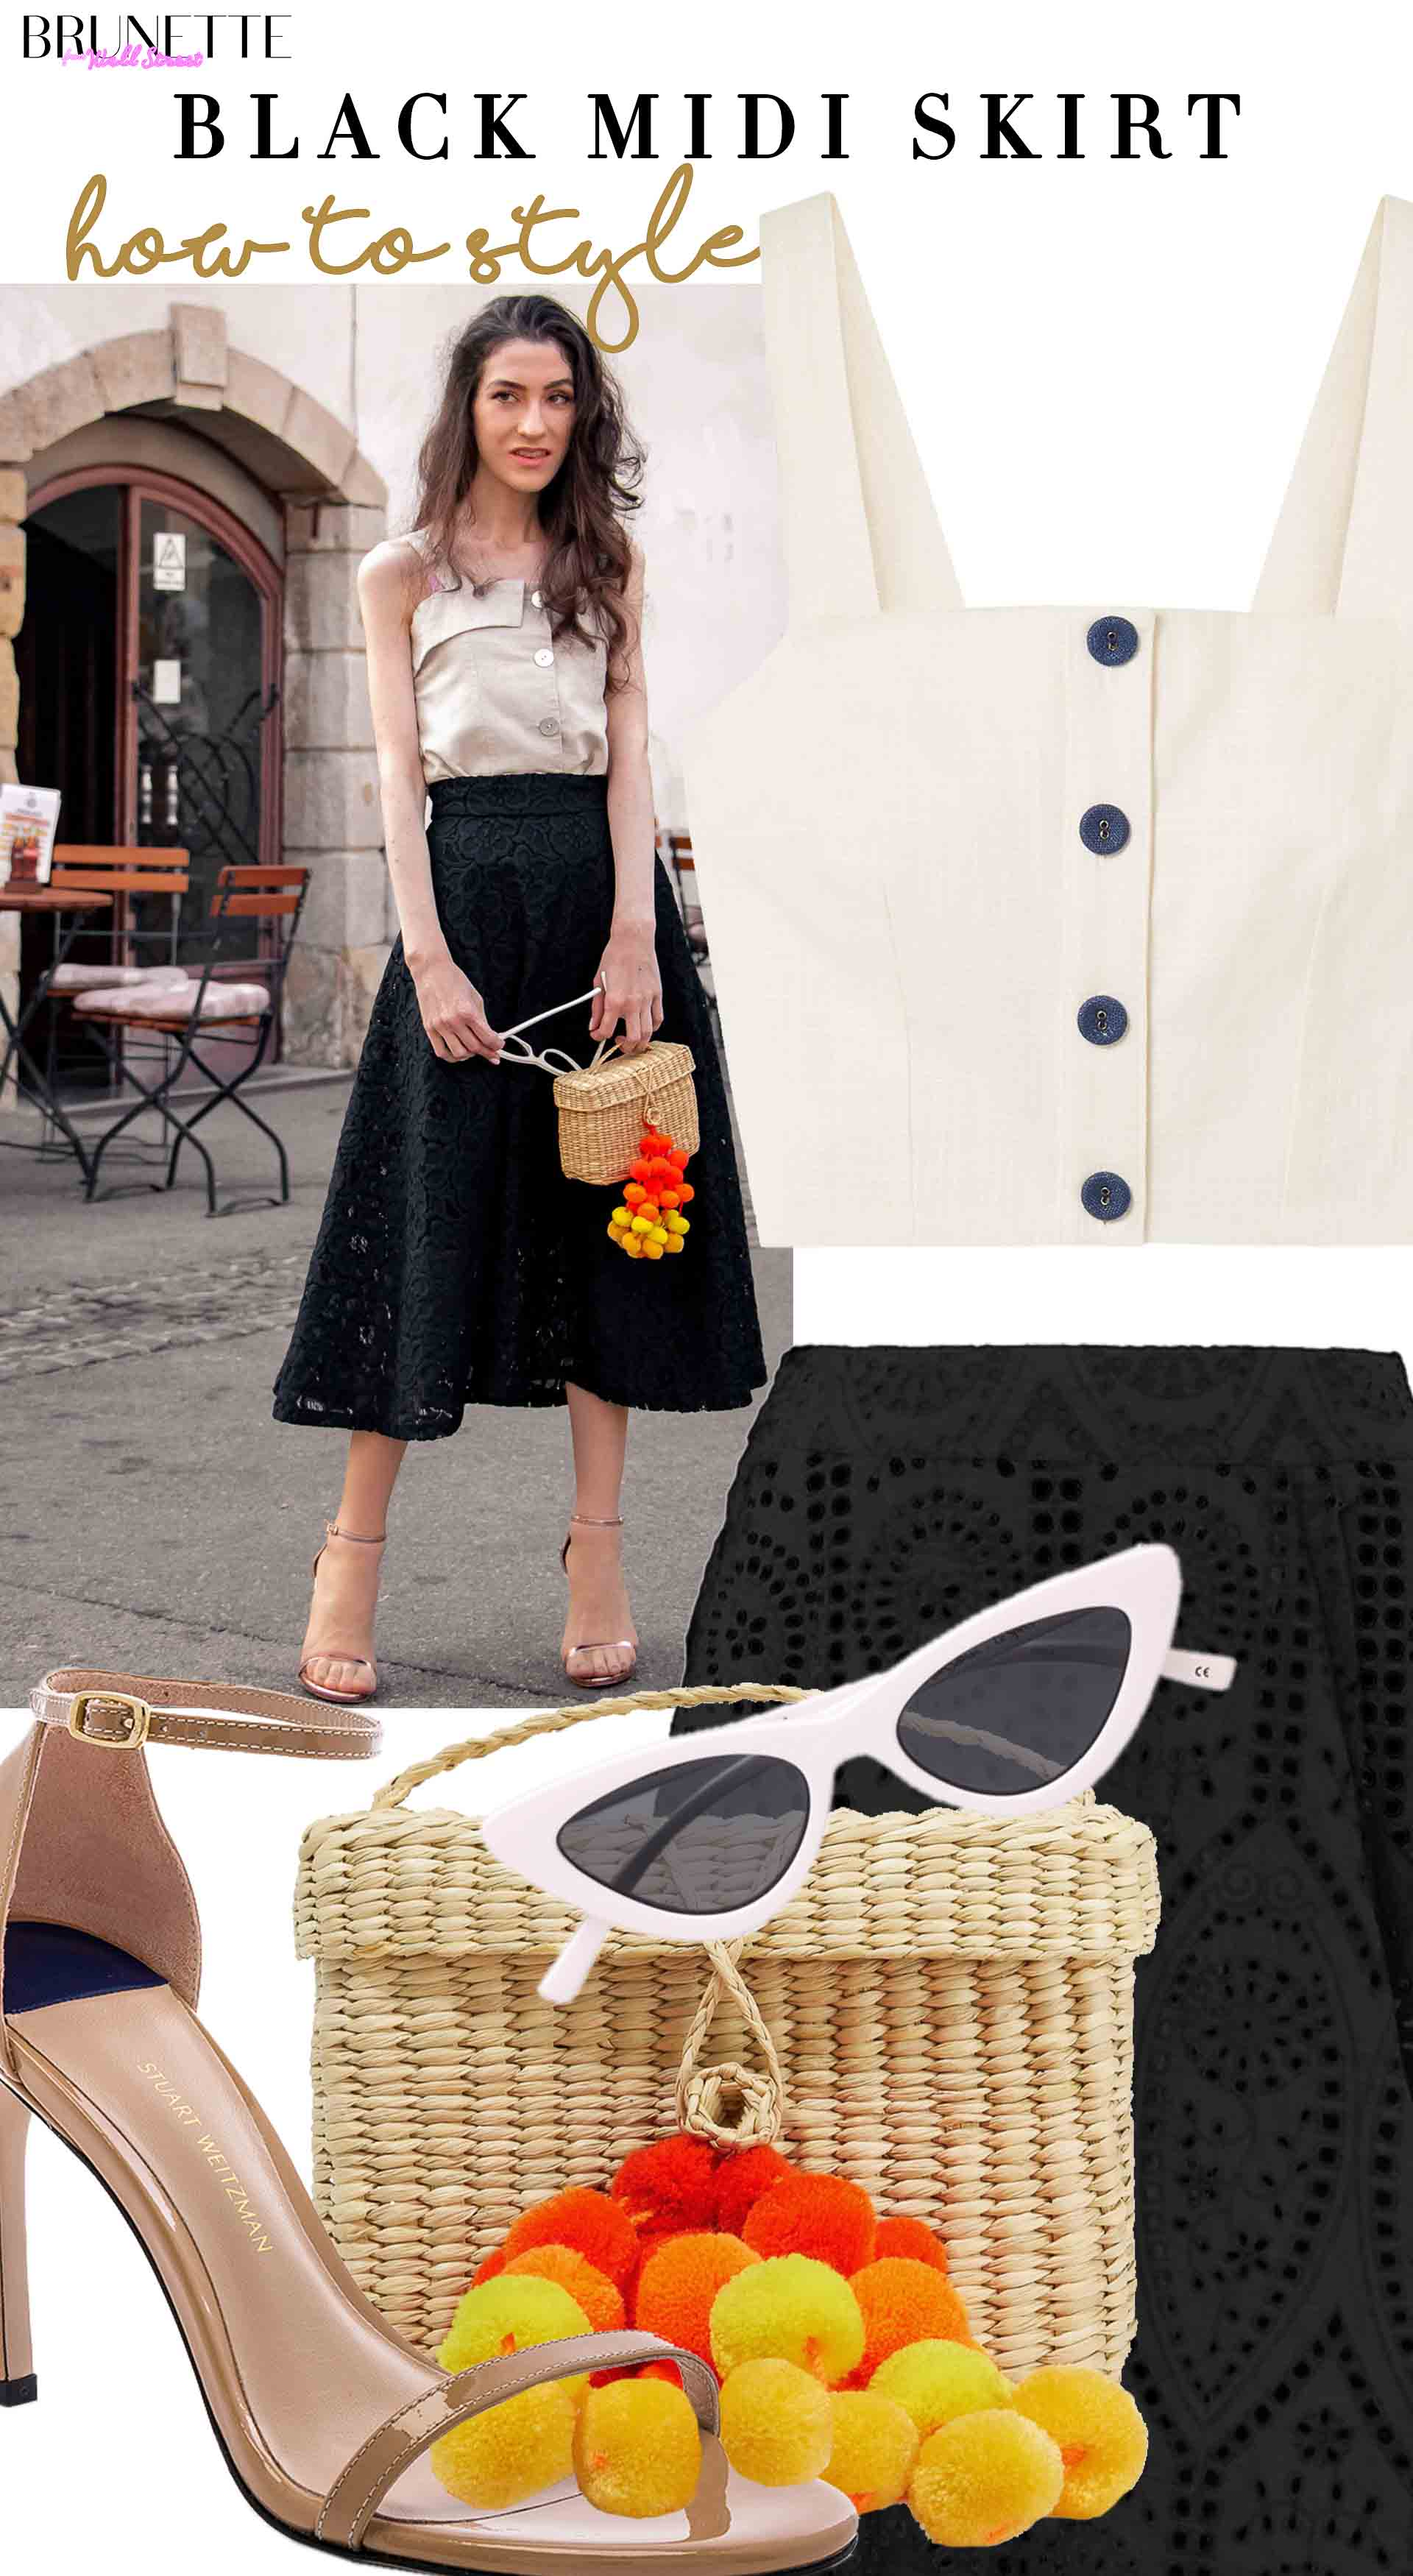 Brunette from Wall Street how to style linen button front crop top lace midi skirt nannacay basket bag nudistsong sandals cateye sunglasses for countryside summer wedding